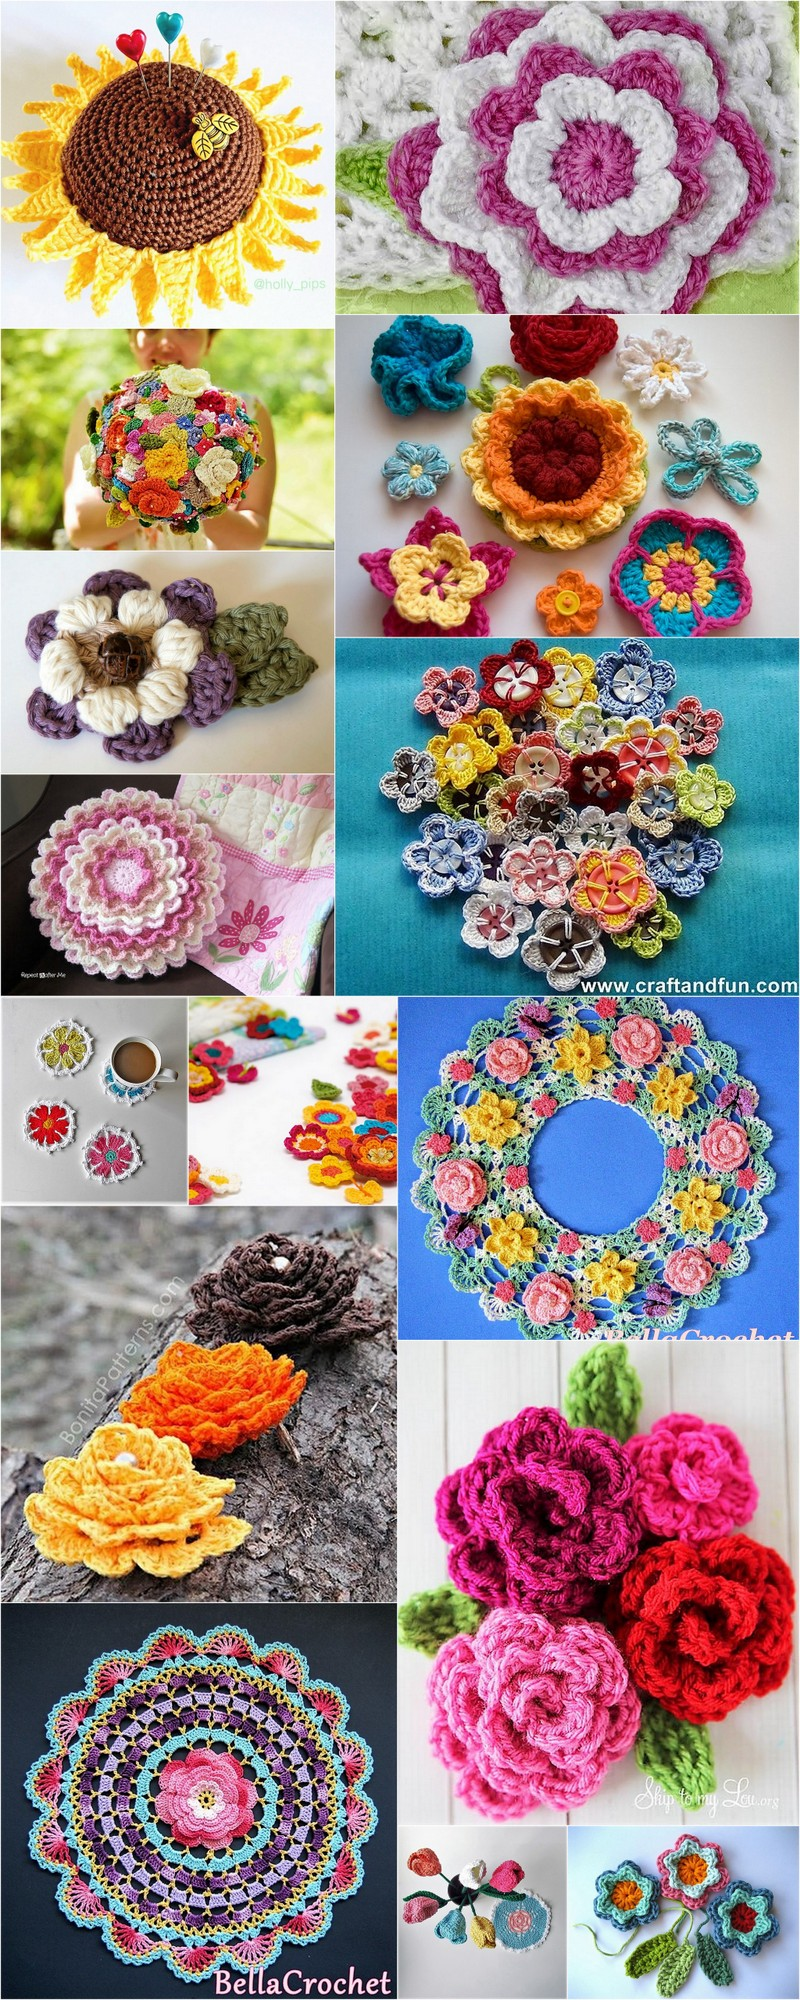 crochet-flowers-patterns-plans